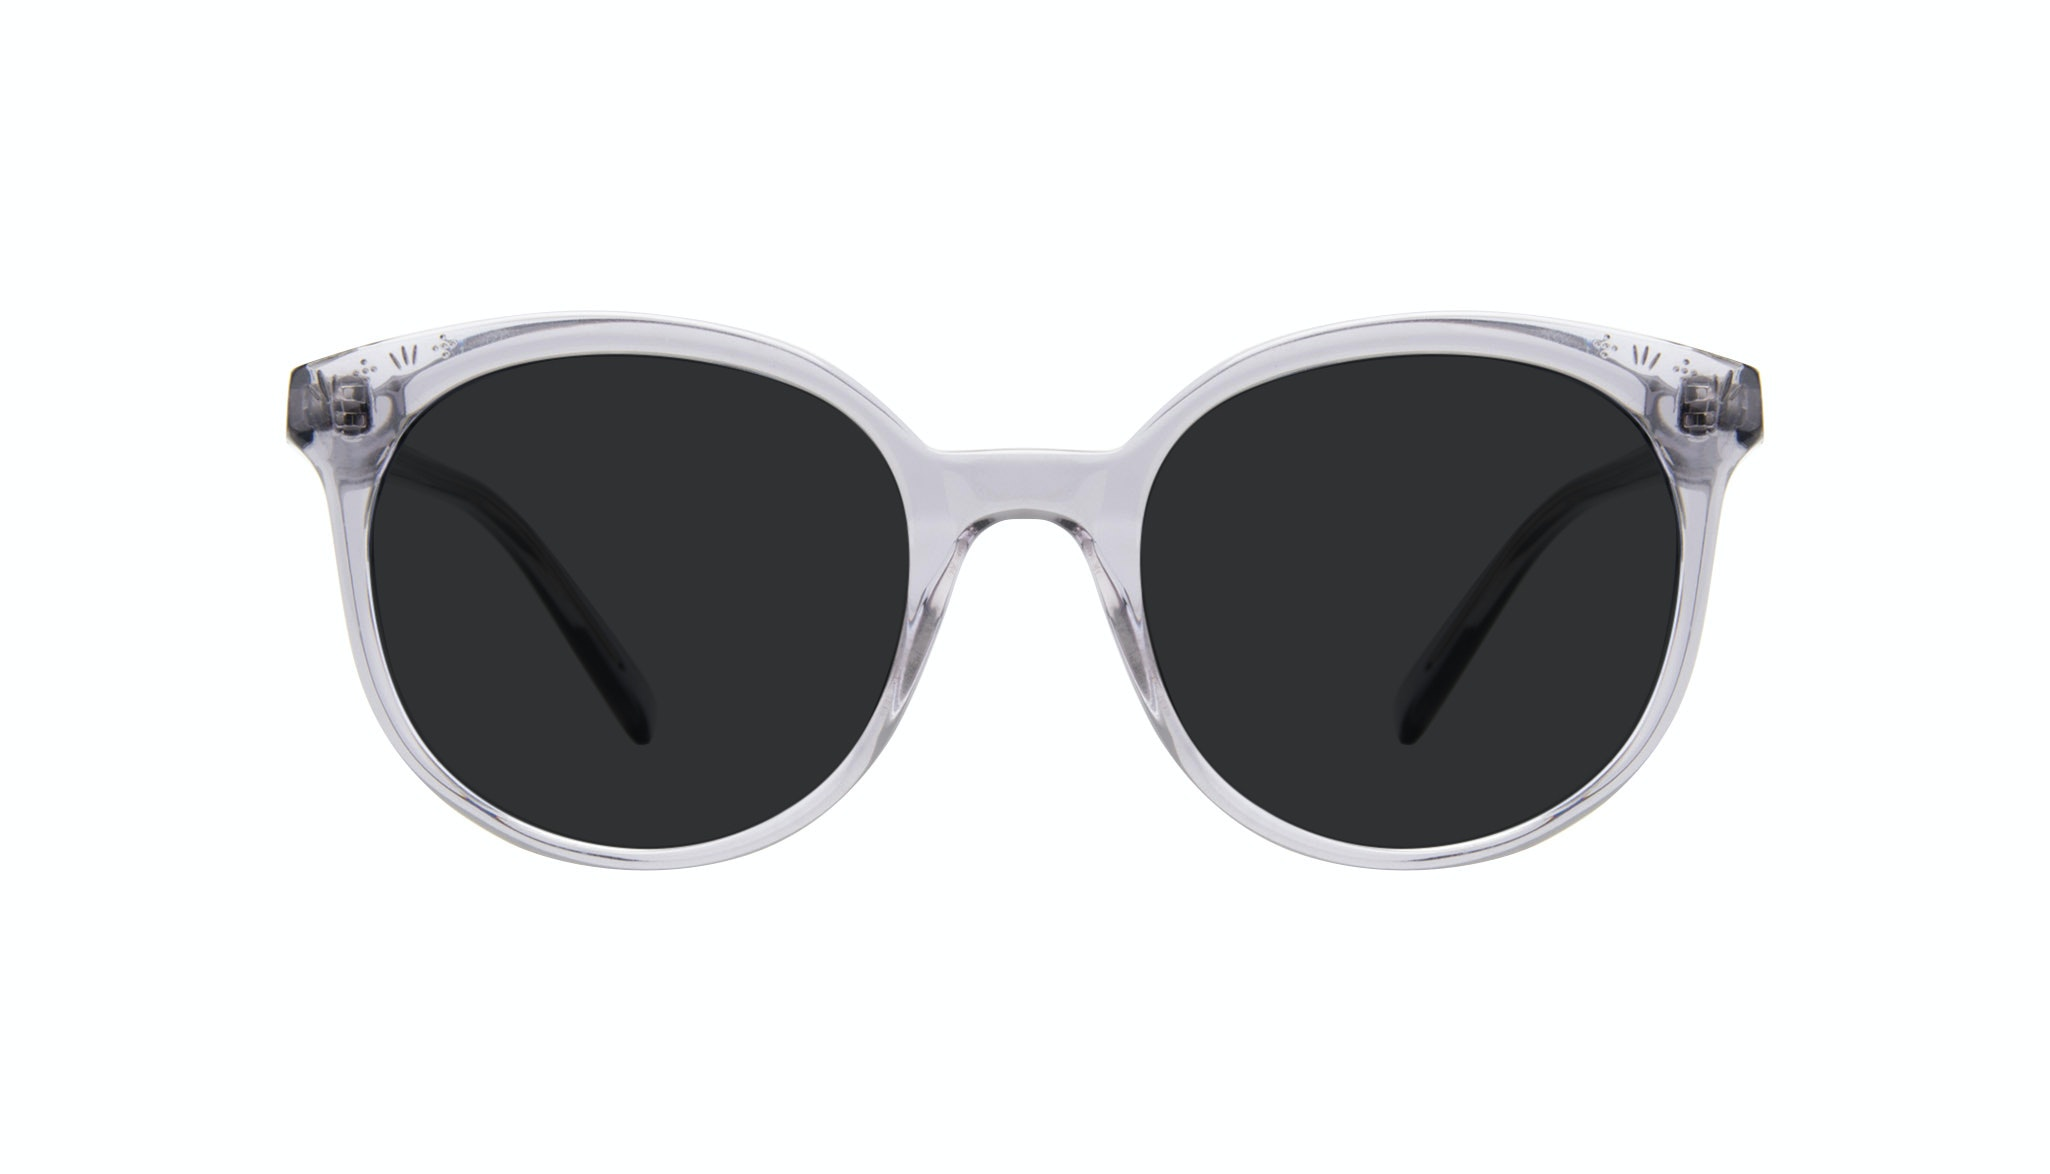 Affordable Fashion Glasses Round Sunglasses Women Must Grey